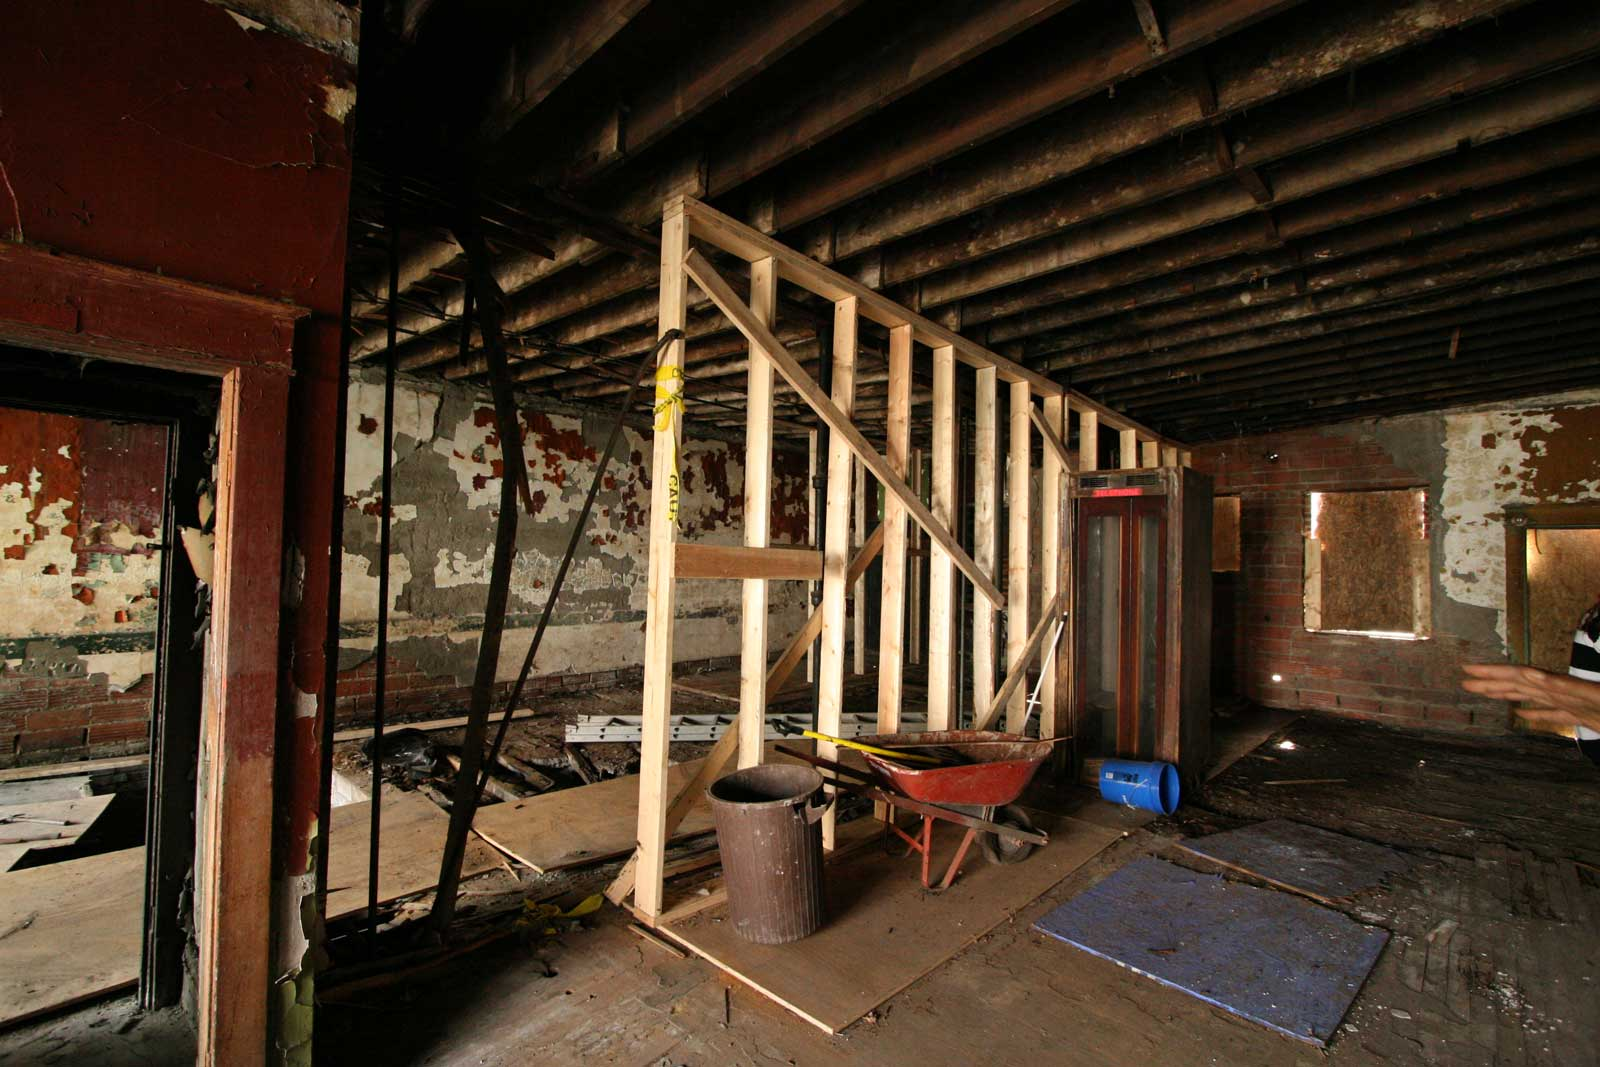 Temporary structural framing to support floor joists above